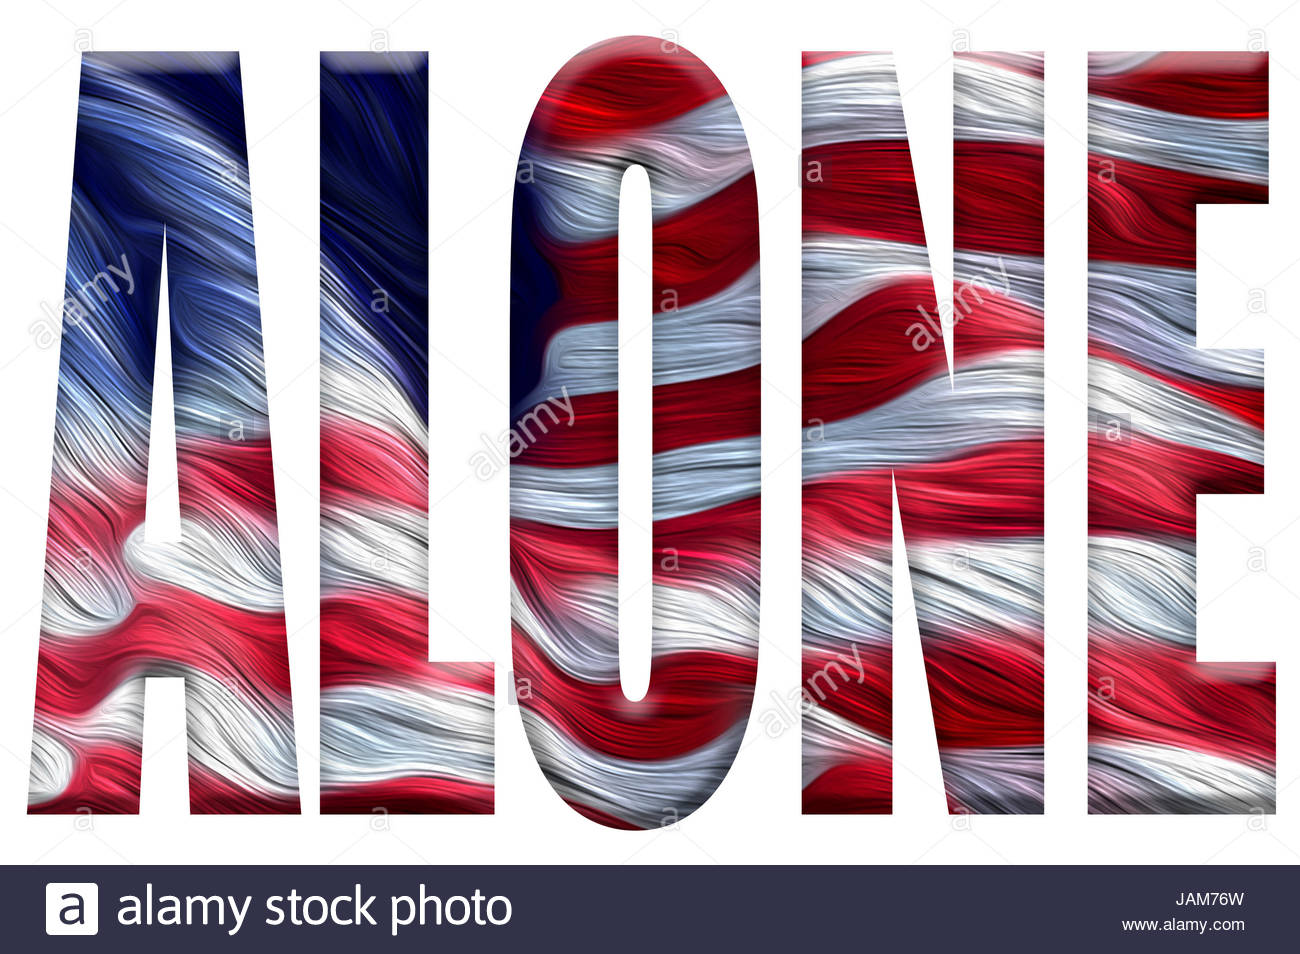 Digital Illustration - America alone. American flag with the word Alone. Trump's America First policy is increasingly - Stock Image